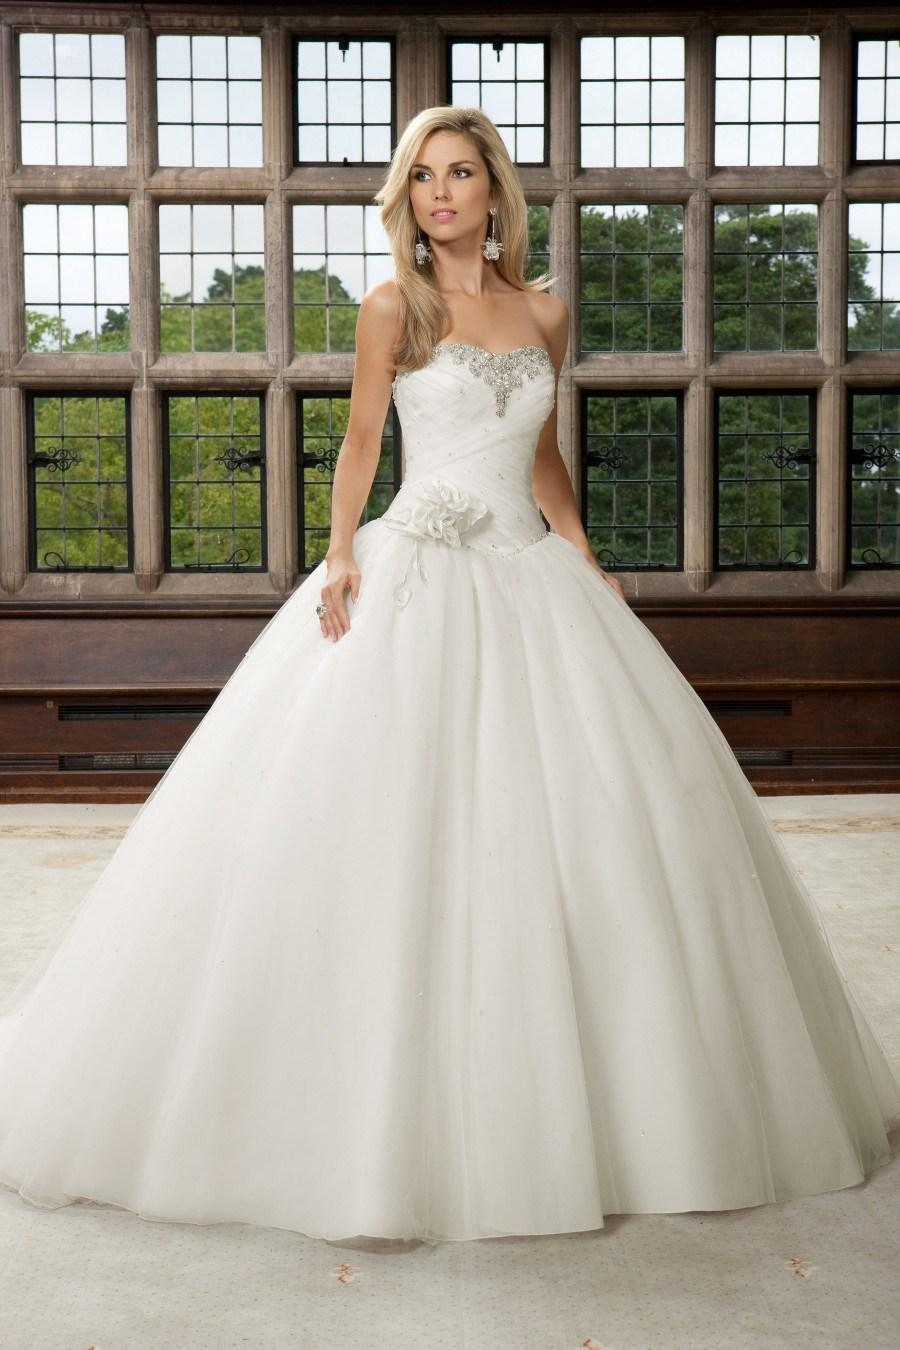 cinderella ball gown wedding dress wedding and bridal On dresses that look like wedding dresses